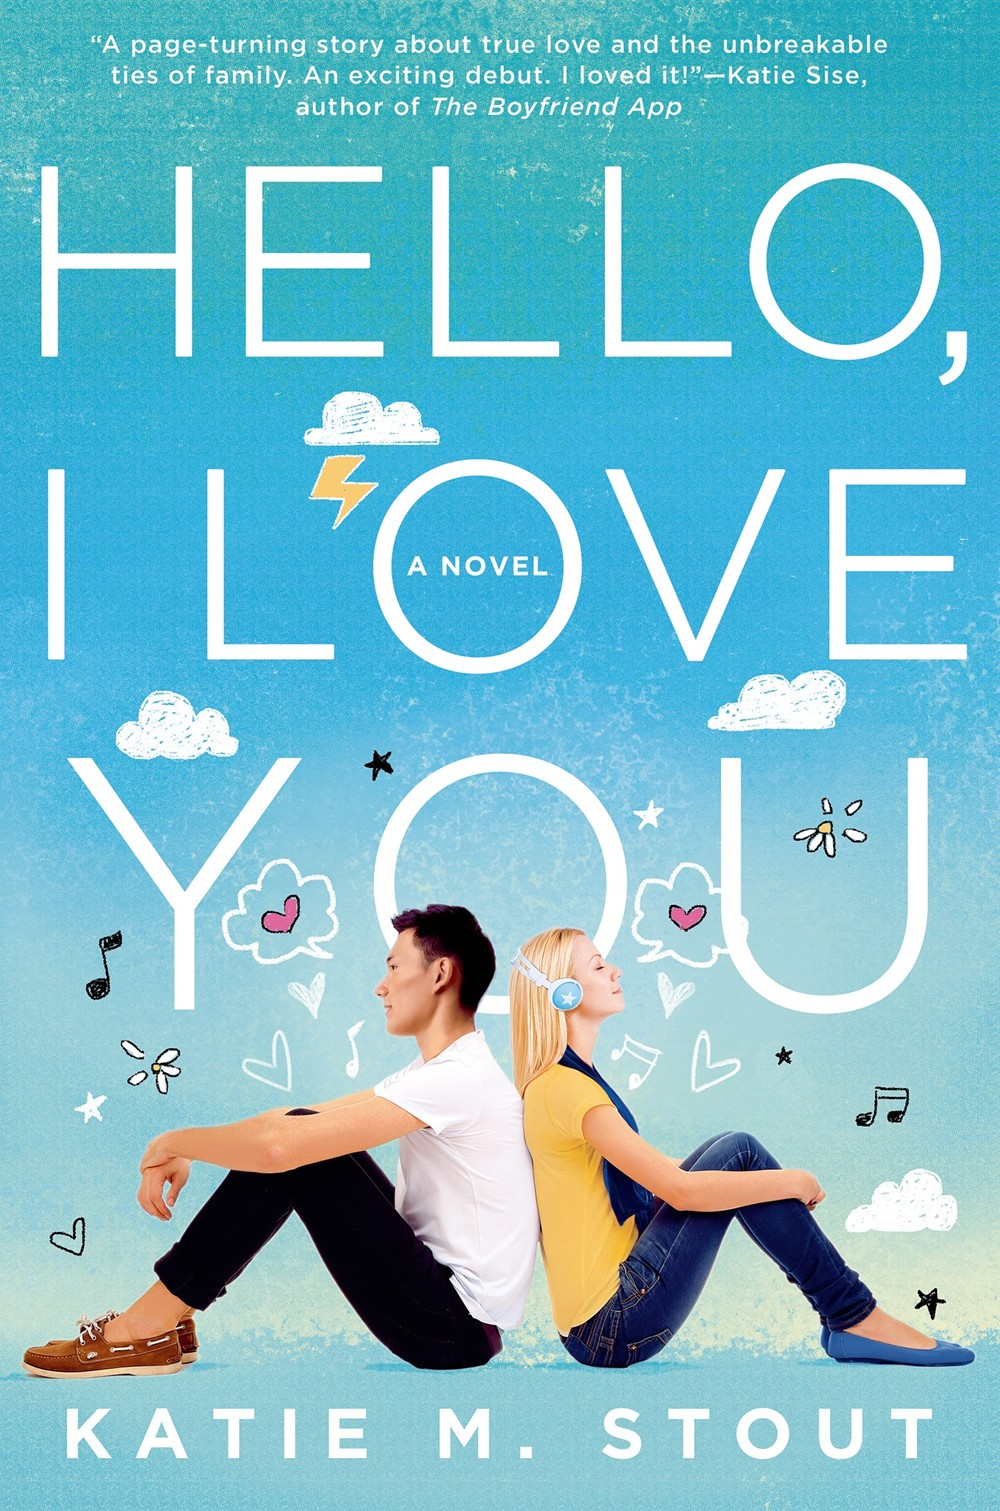 Hello Whello Wgo To Www Bing Com: 'Hello, I Love You' Is (Probably) The First Novel About